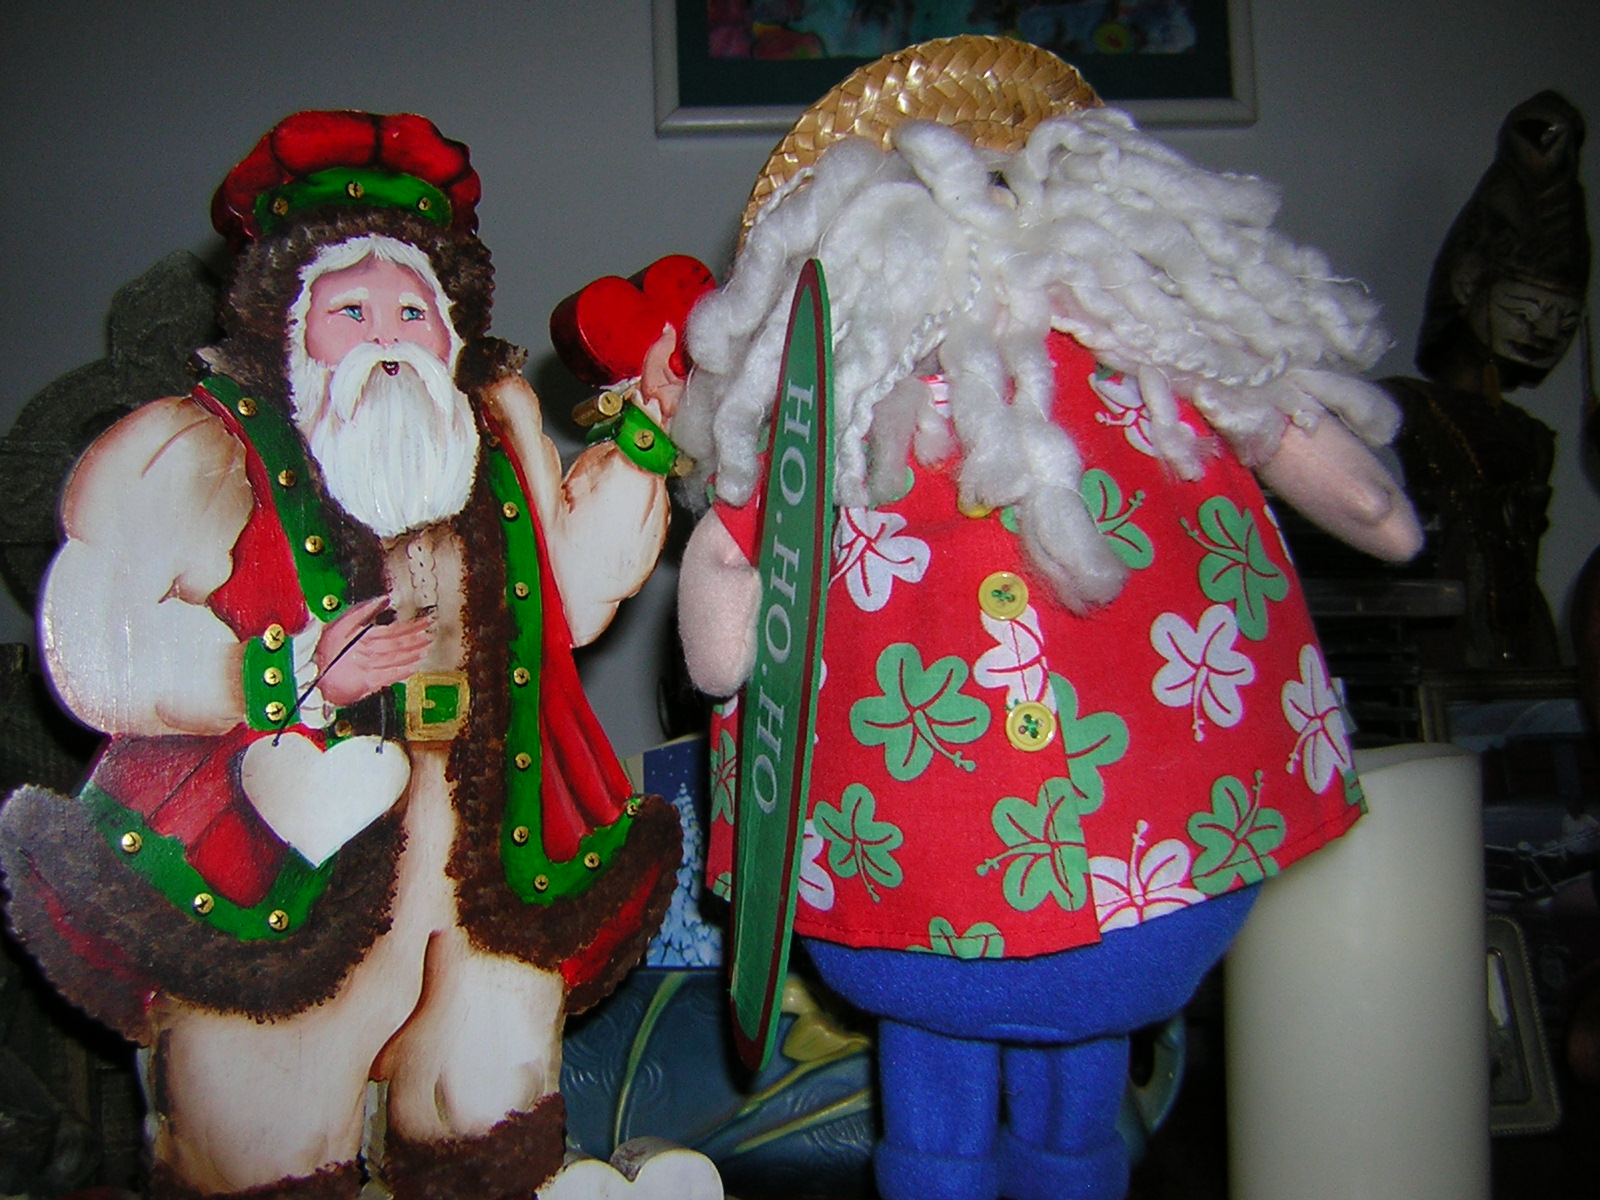 santa on left above is hand painted by my friend and this photo shows it more clearly than in the previous blog post photo and i have to smile when i see - When Is Christmas In 2015